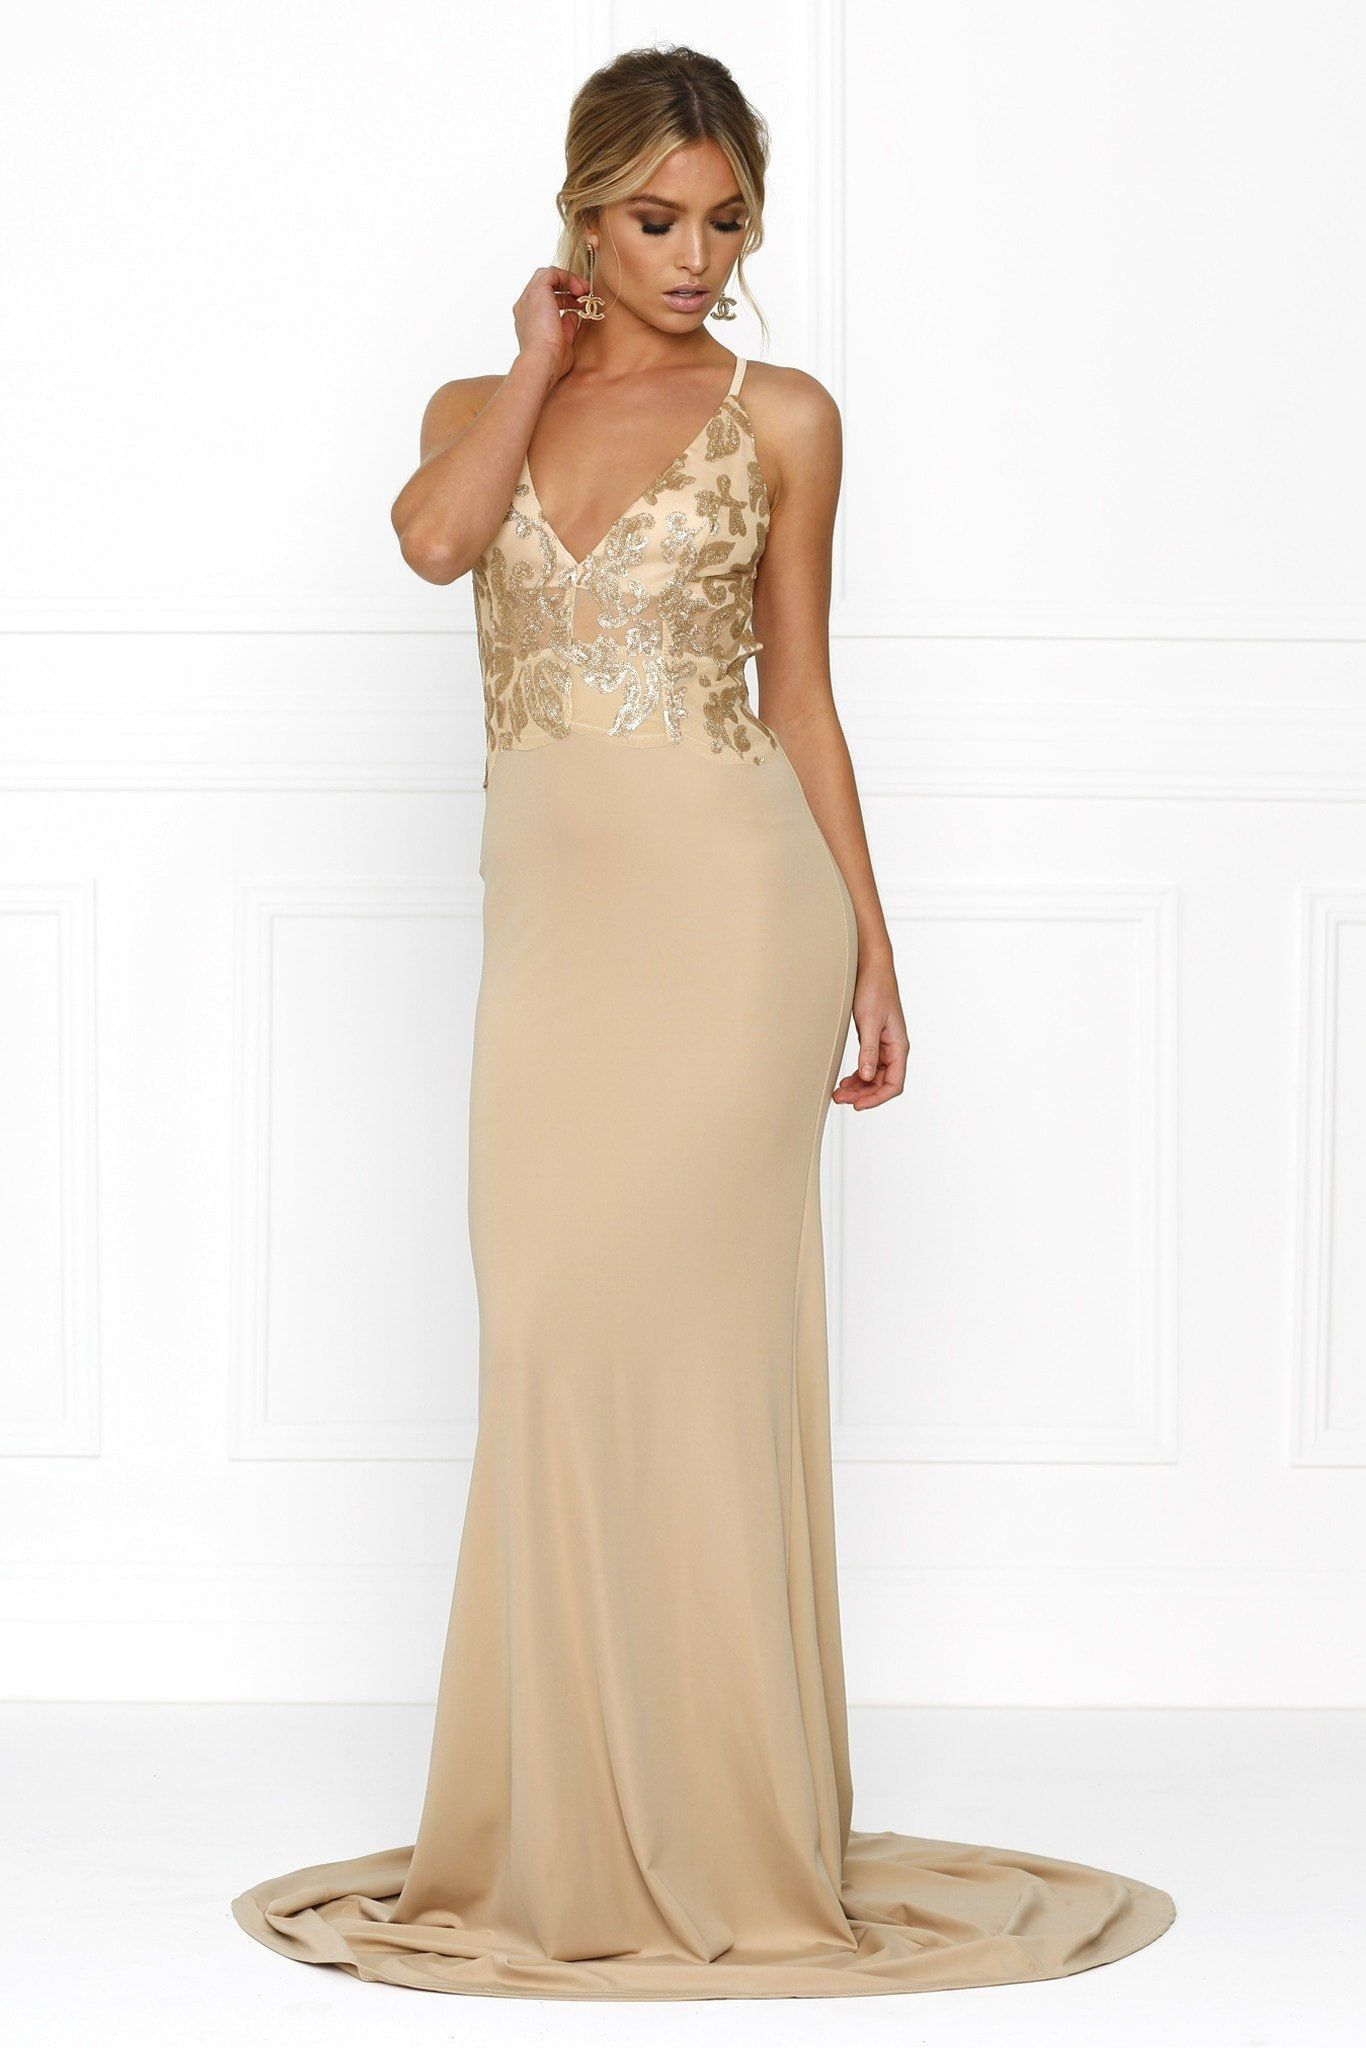 Honey Couture SHERA Gold w Gold Embroided Tulle Formal Gown Dress ...